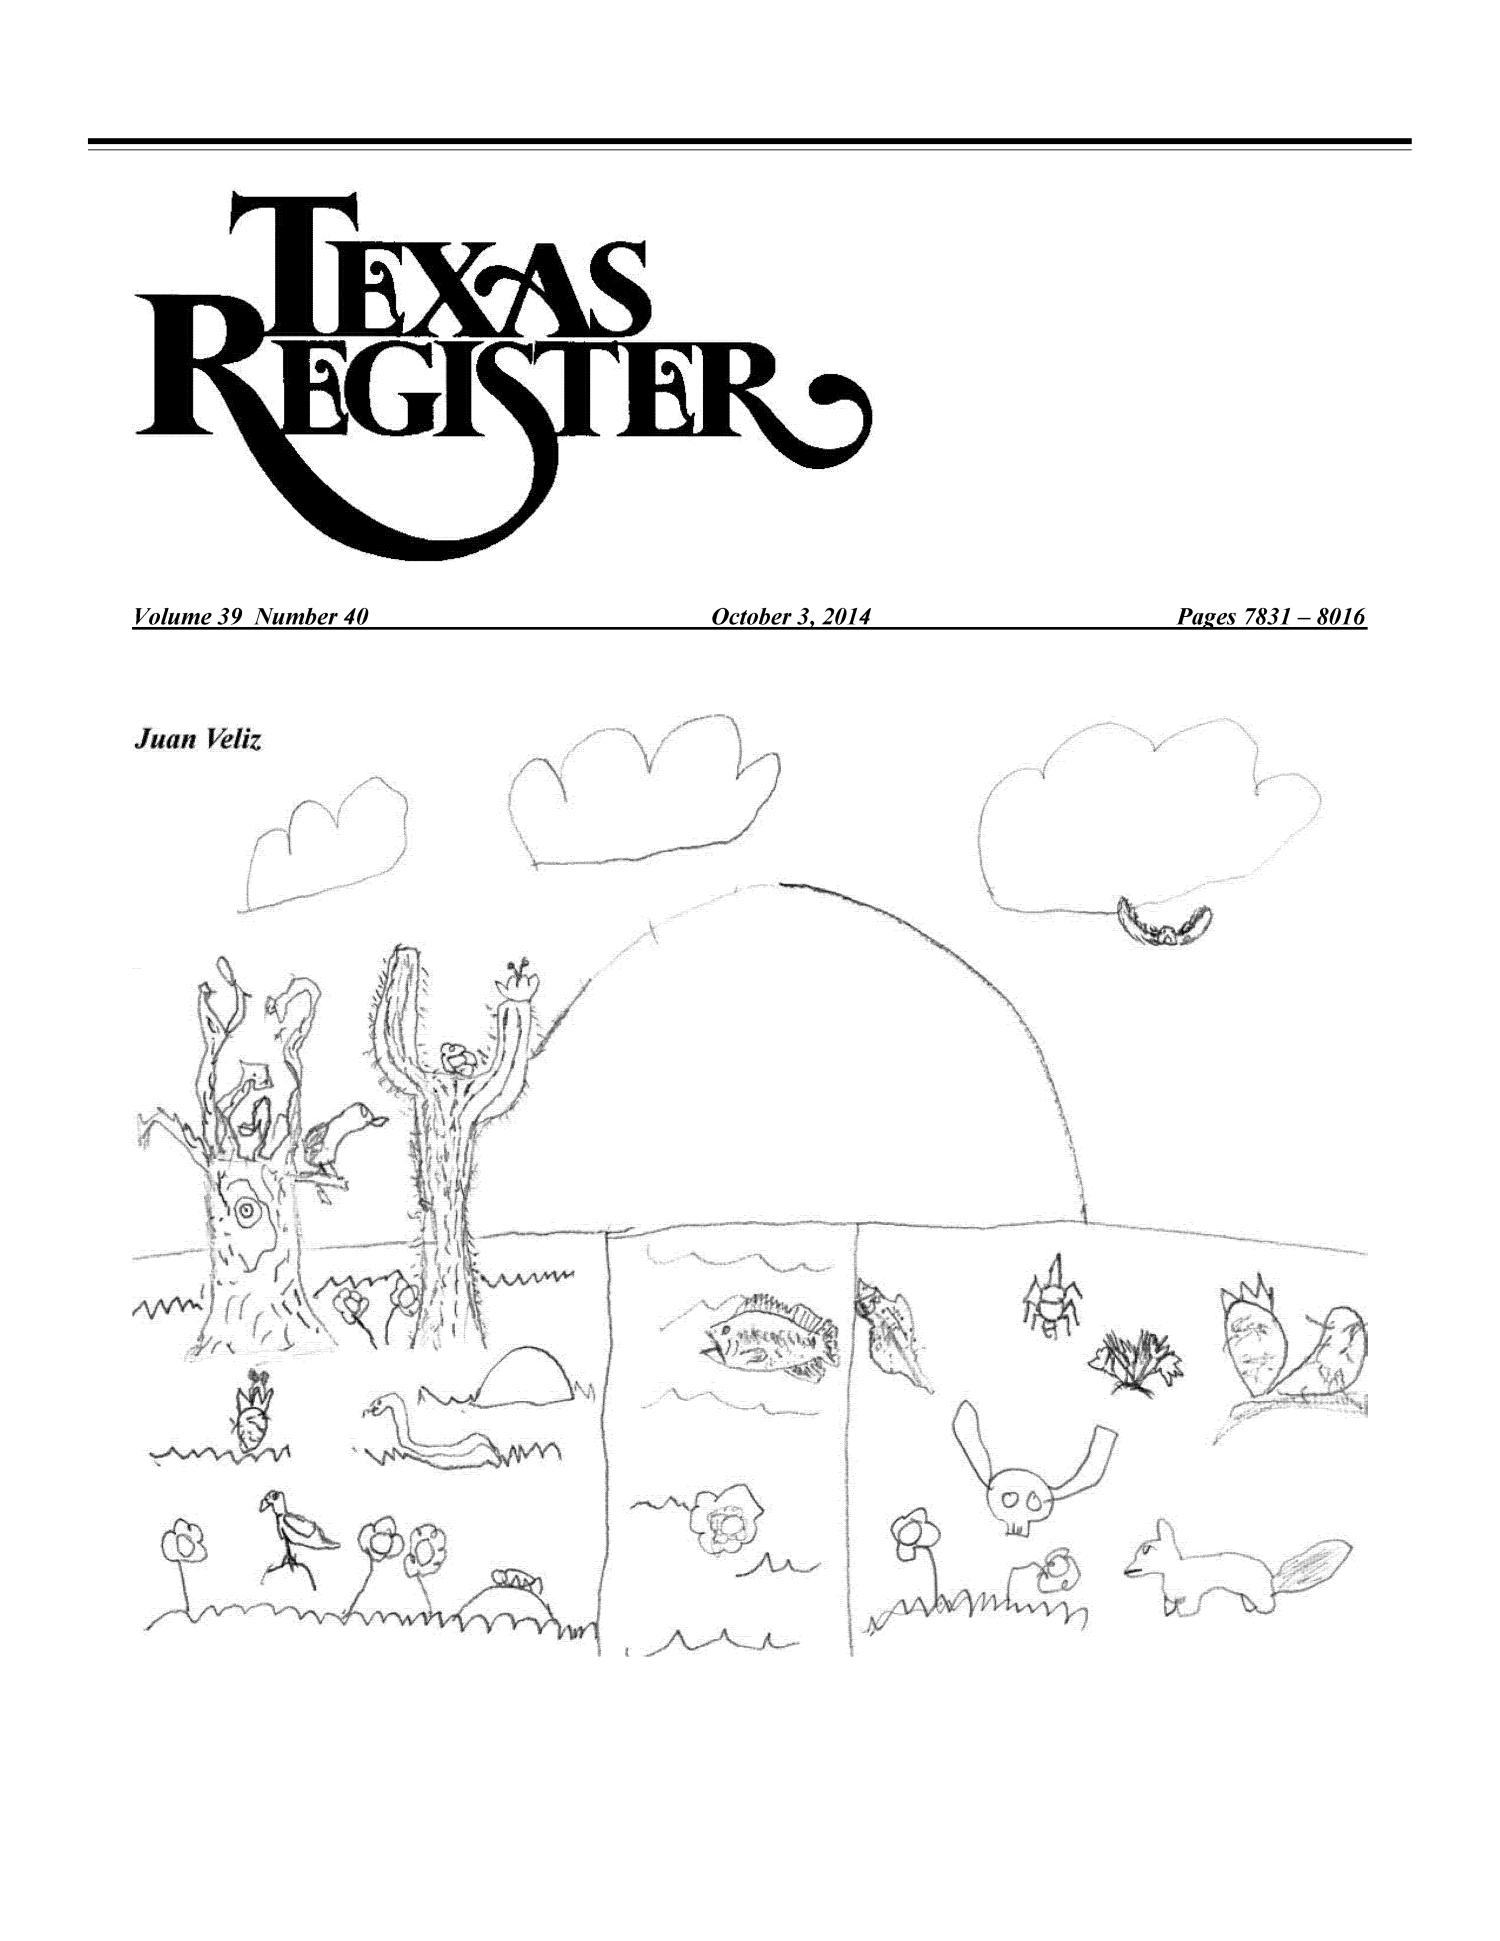 Texas Register, Volume 39, Number 40, Pages 7831-8016